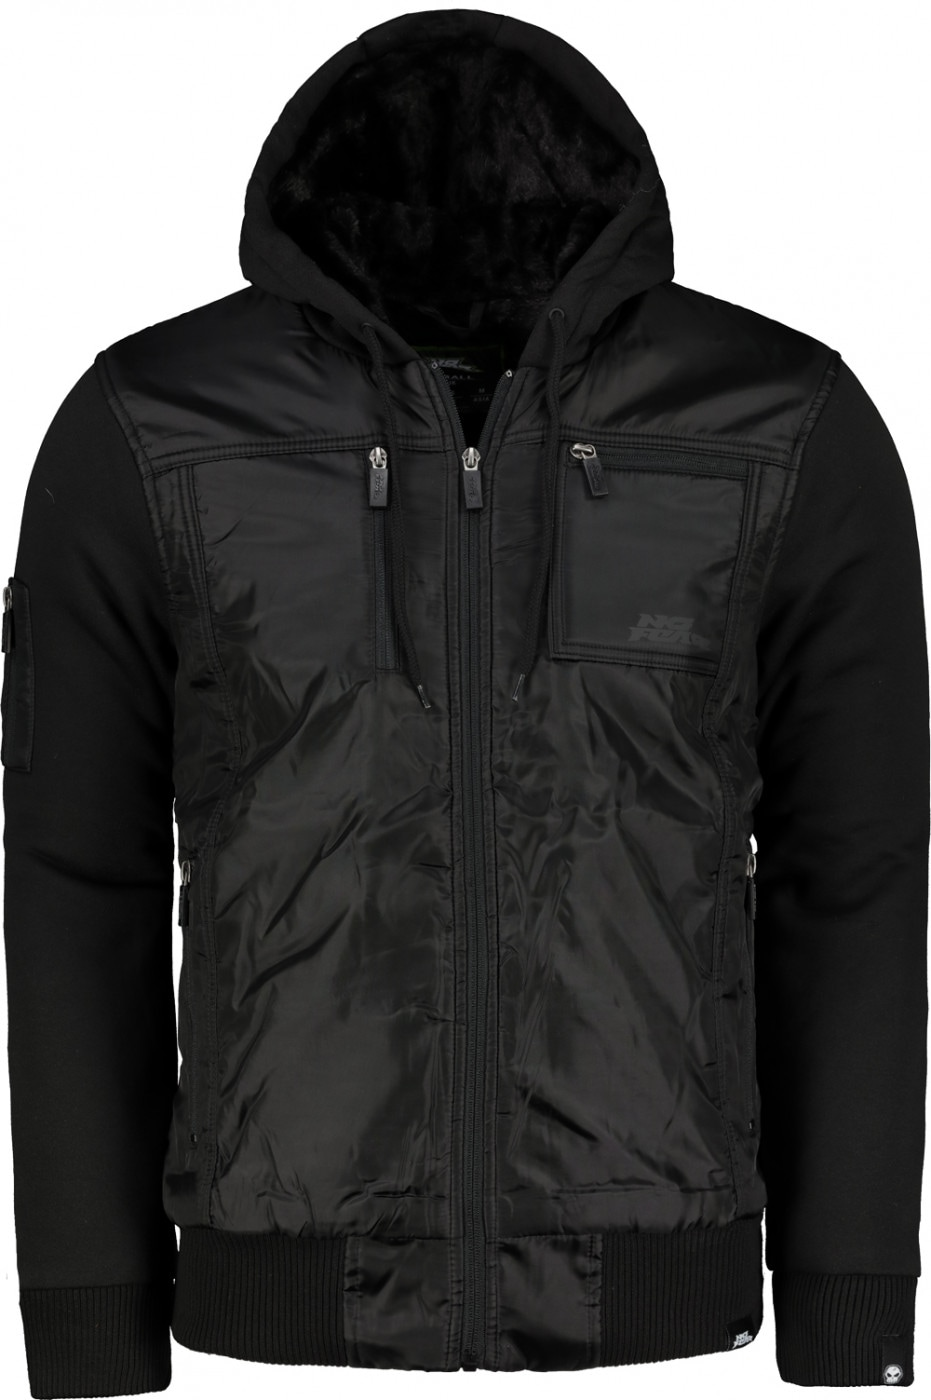 Men's jacket No Fear Lined Zip